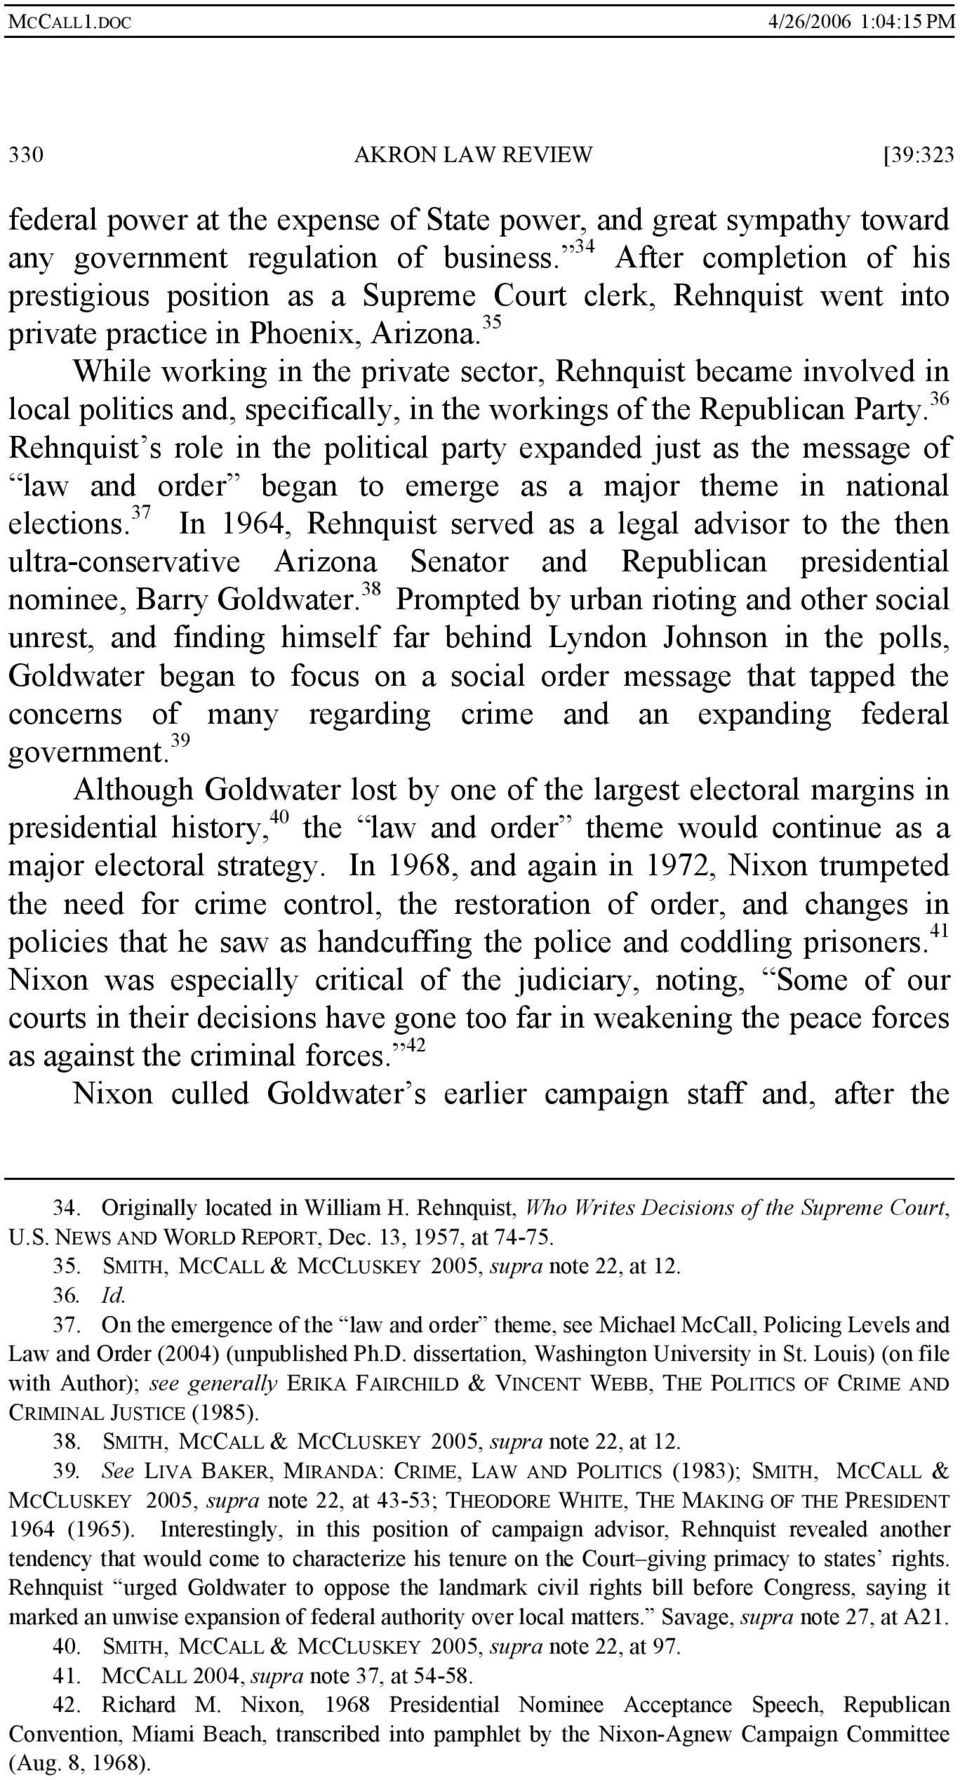 35 While working in the private sector, Rehnquist became involved in local politics and, specifically, in the workings of the Republican Party.